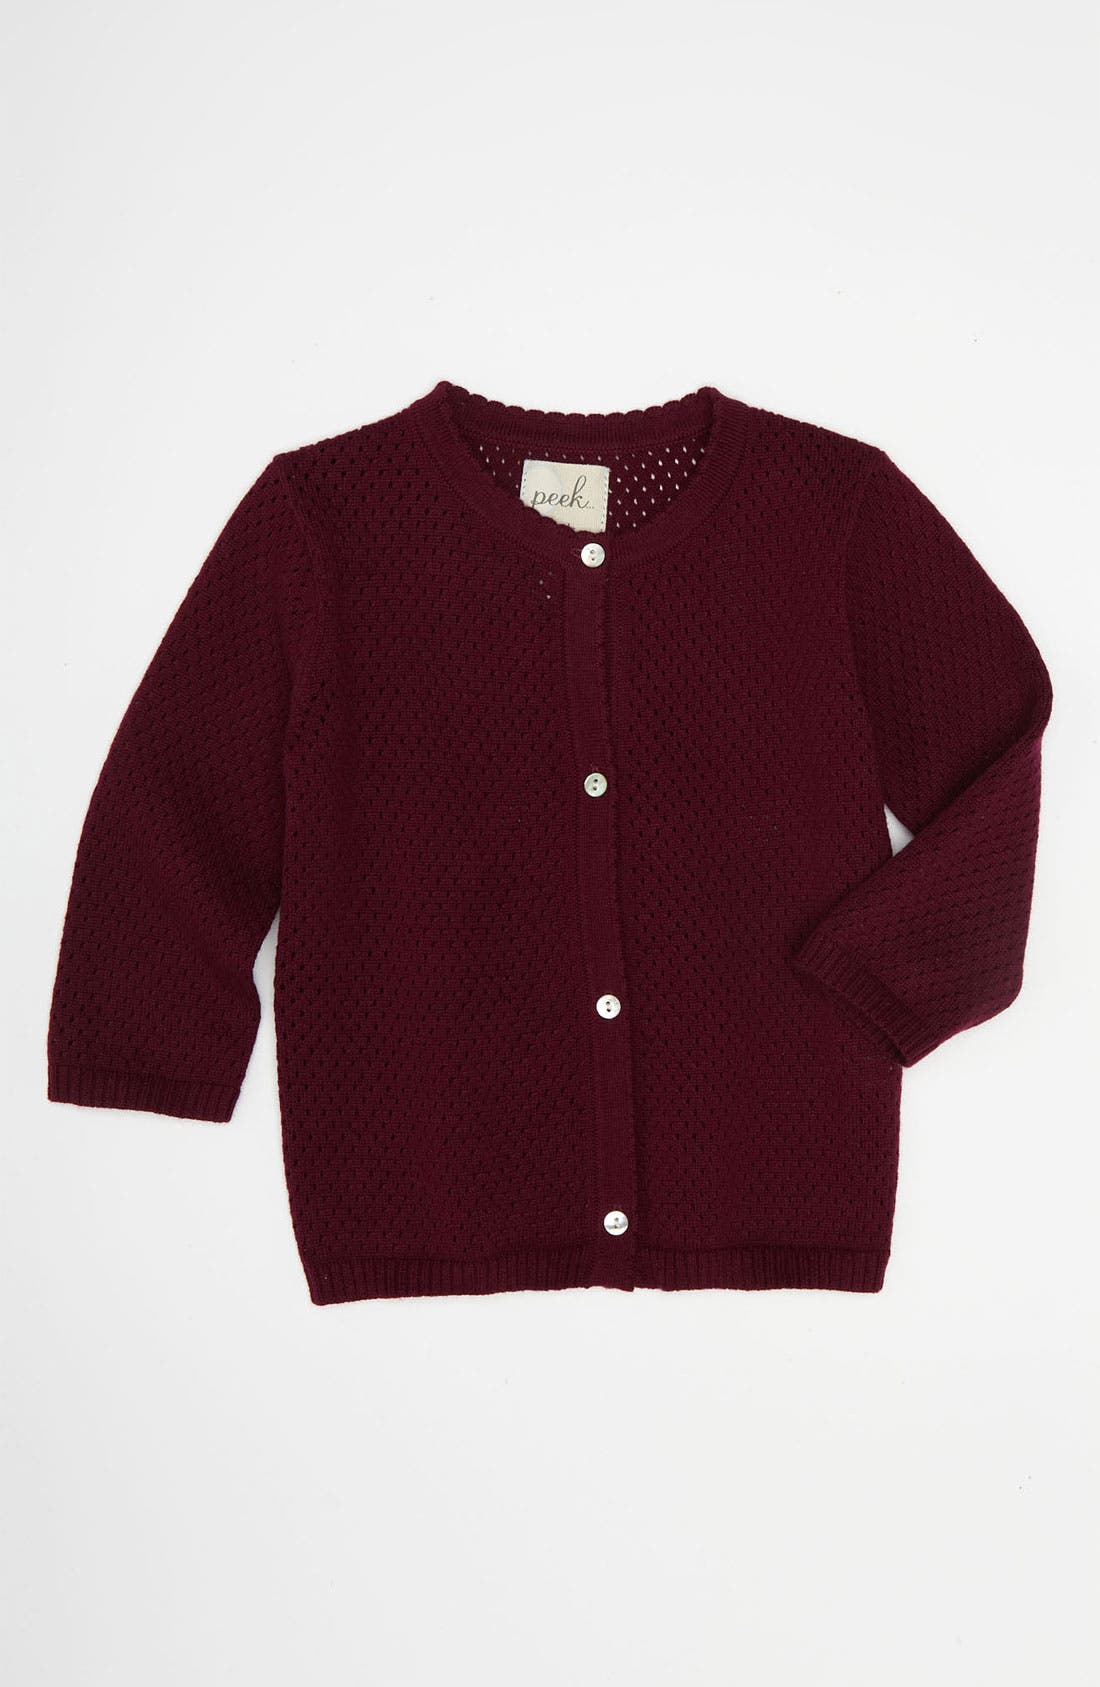 Alternate Image 1 Selected - Peek 'Plum' Cardigan (Infant)